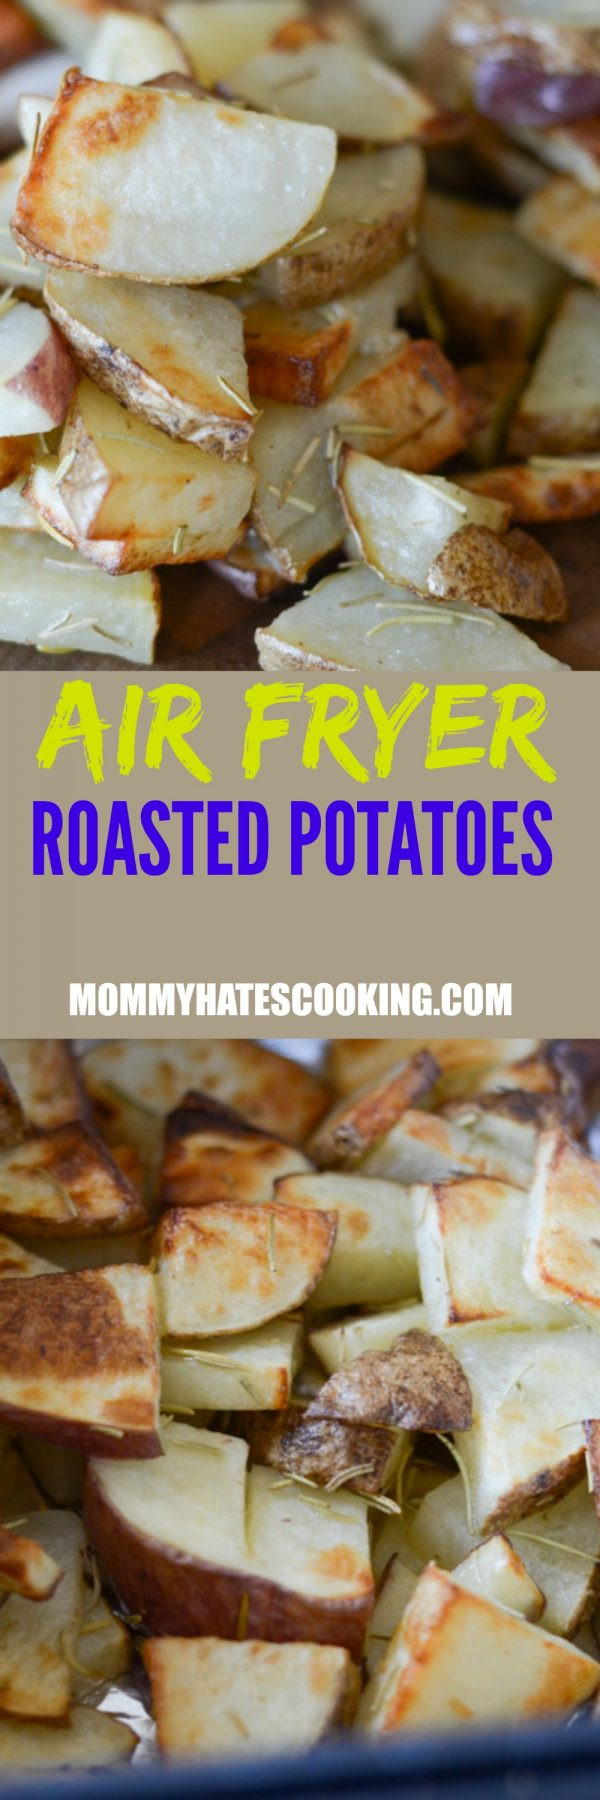 Air Fryer Roasted Potatoes  Air Fryer Roasted Potatoes Mommy Hates Cooking